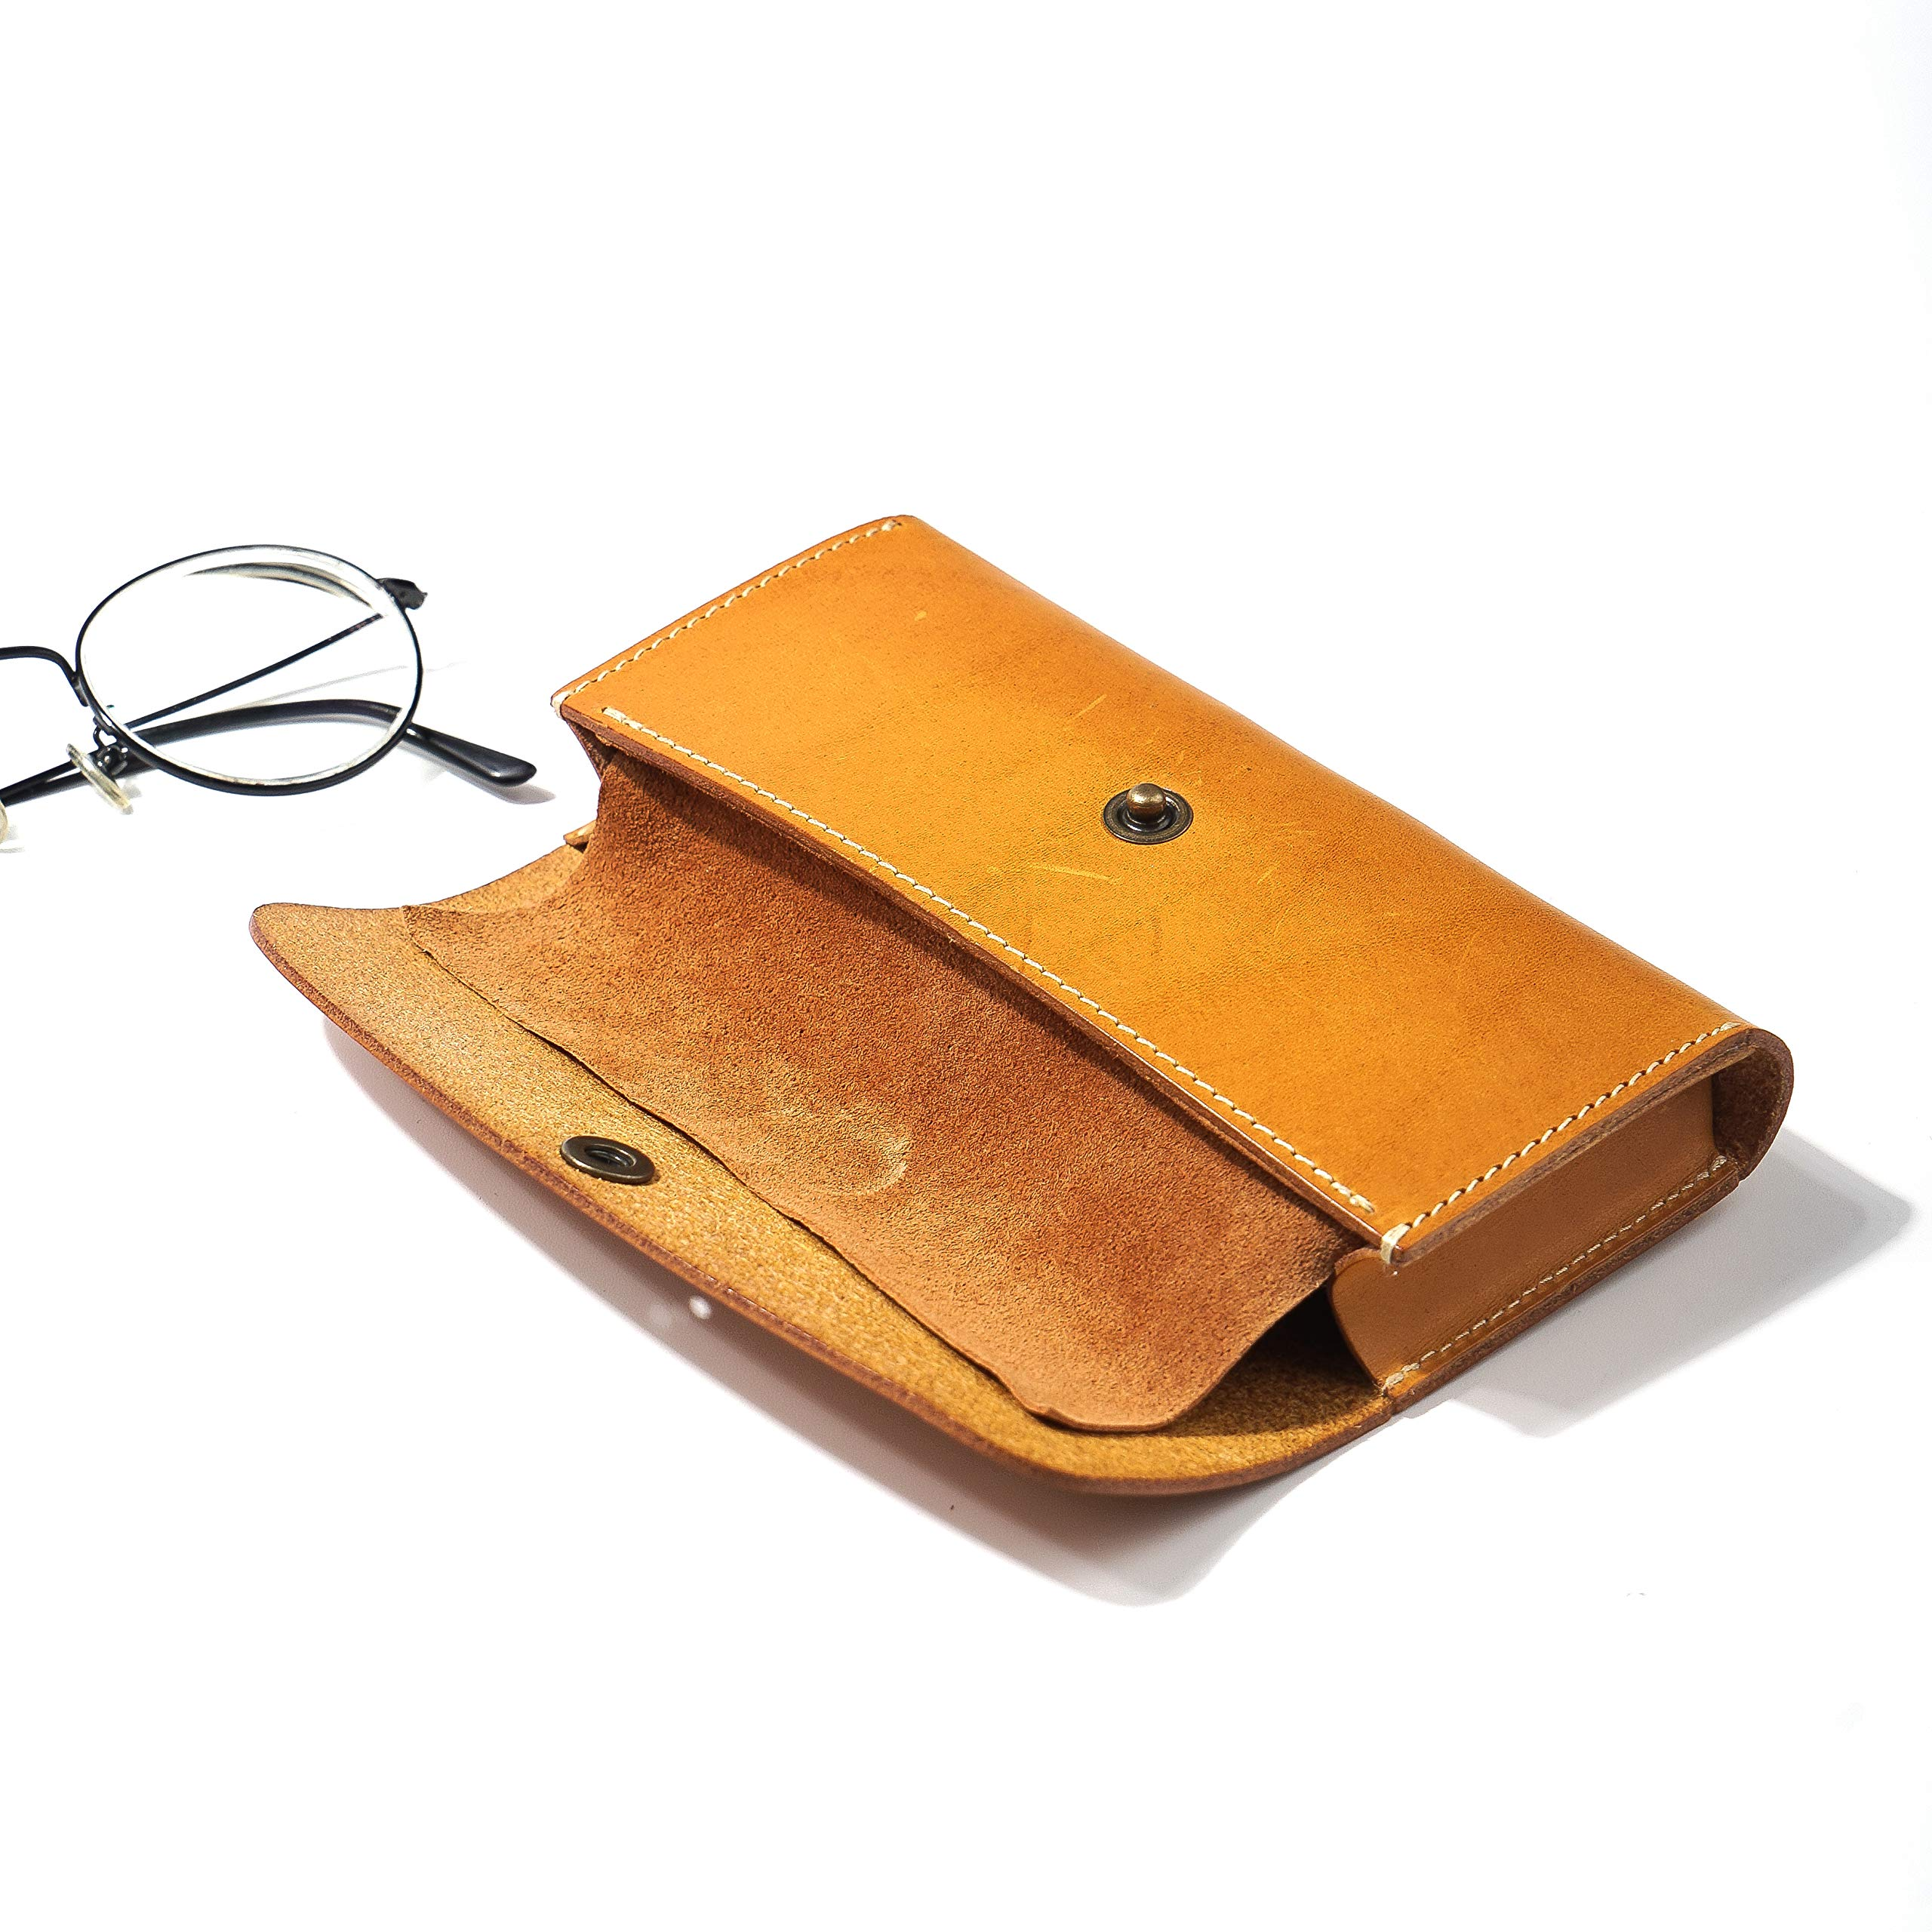 hevitz 3839 Leather Glasses Case Yellow by hevitz